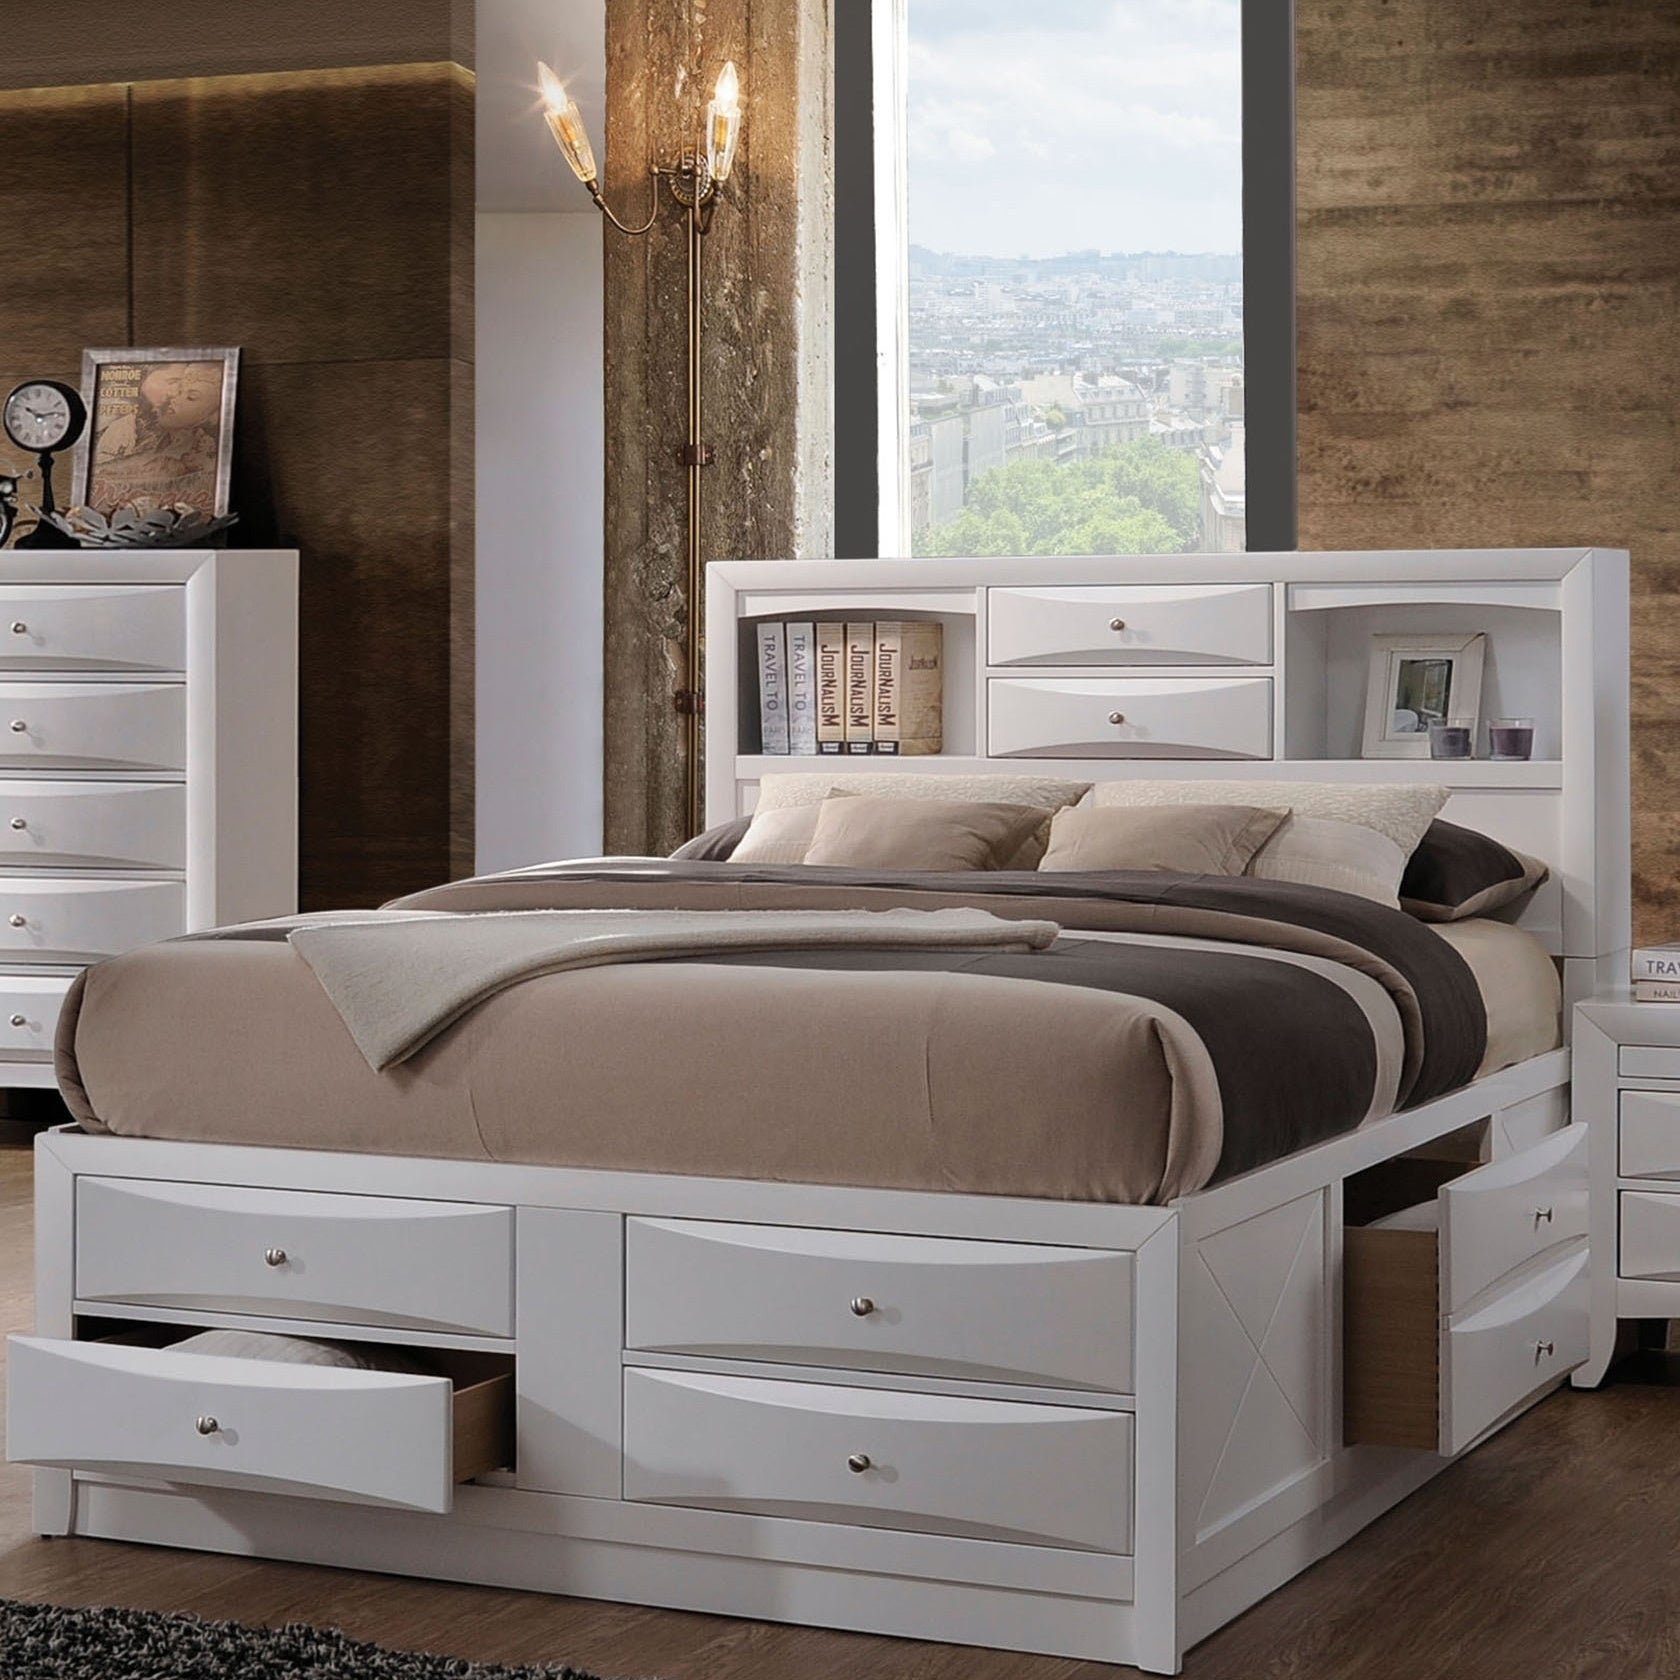 Shop Acme Furniture Ireland Bed With Storage White Free Shipping